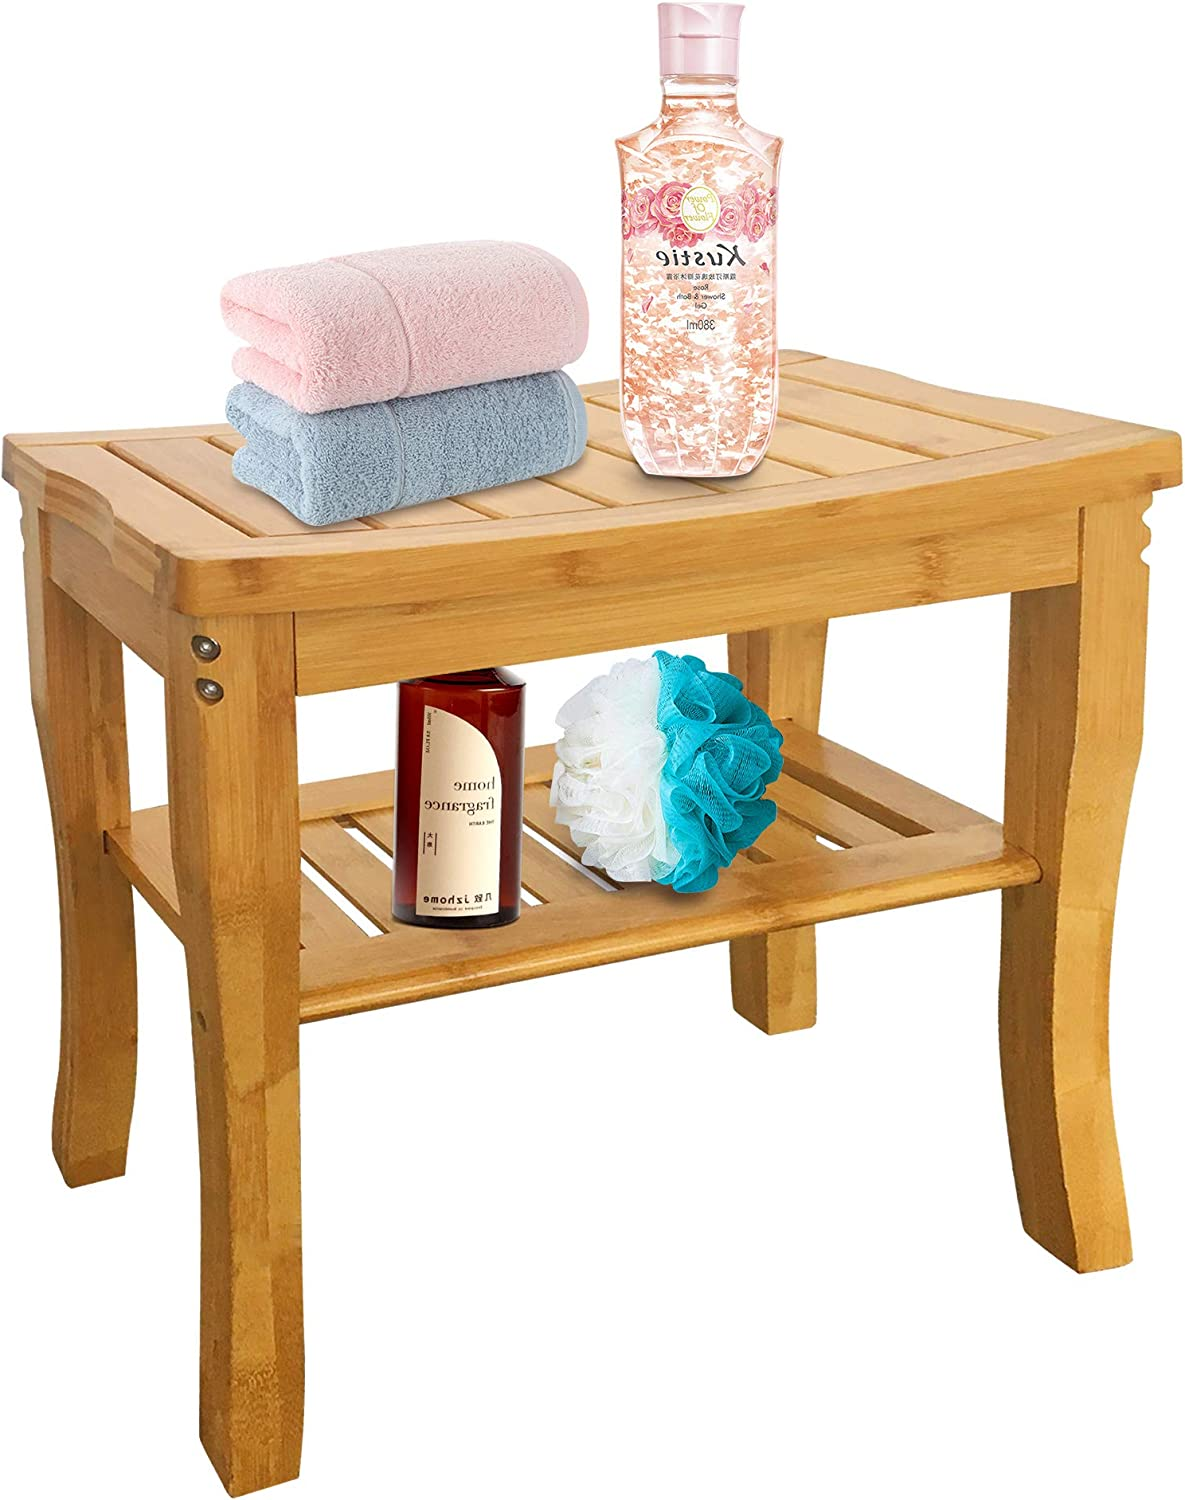 Bamboo Shower Bench Popular standard Bathroom Stool Spa with Directly managed store S Bath